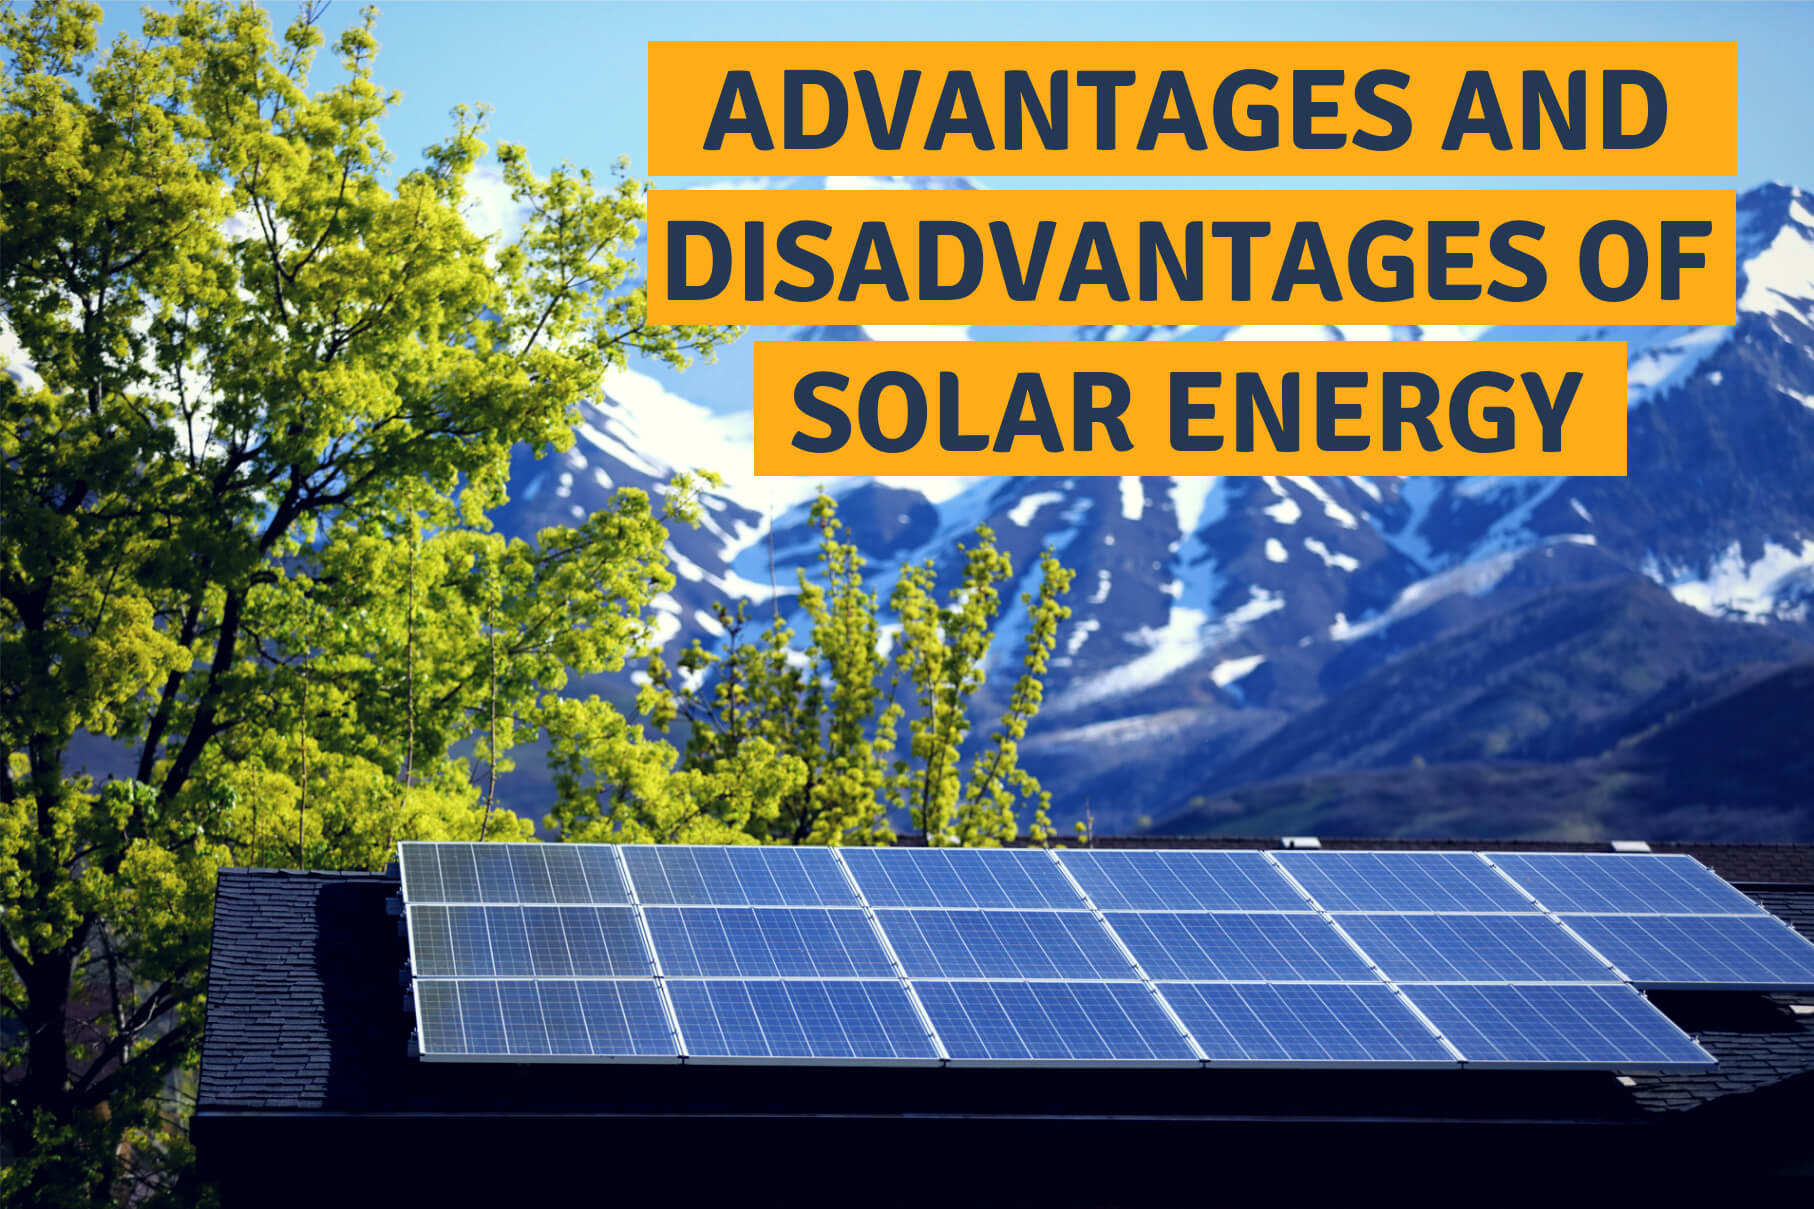 Fundamental Advantages and Disadvantages of Solar Energy - Our Solar